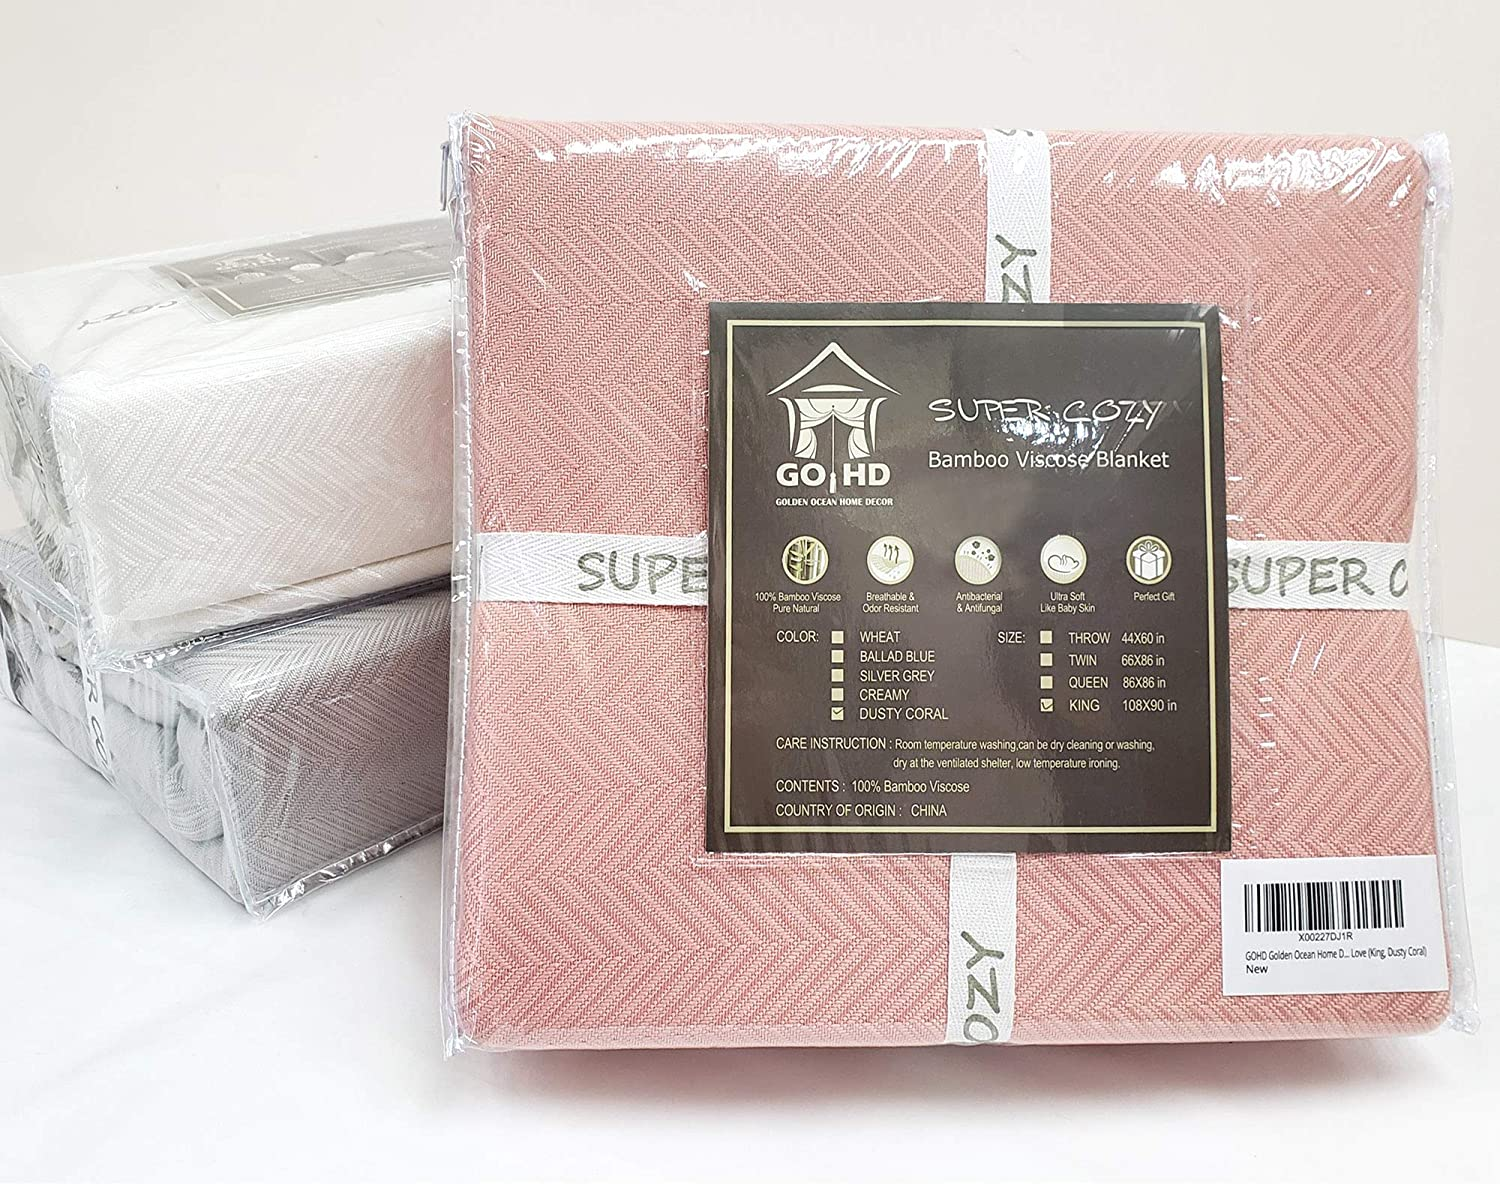 Super Cozy 100% Bamboo Fiber Blanket. Ultra Softness and smothness Like Silk. Drop Well with Heavy Weight. Much Better Than Normal Blankets